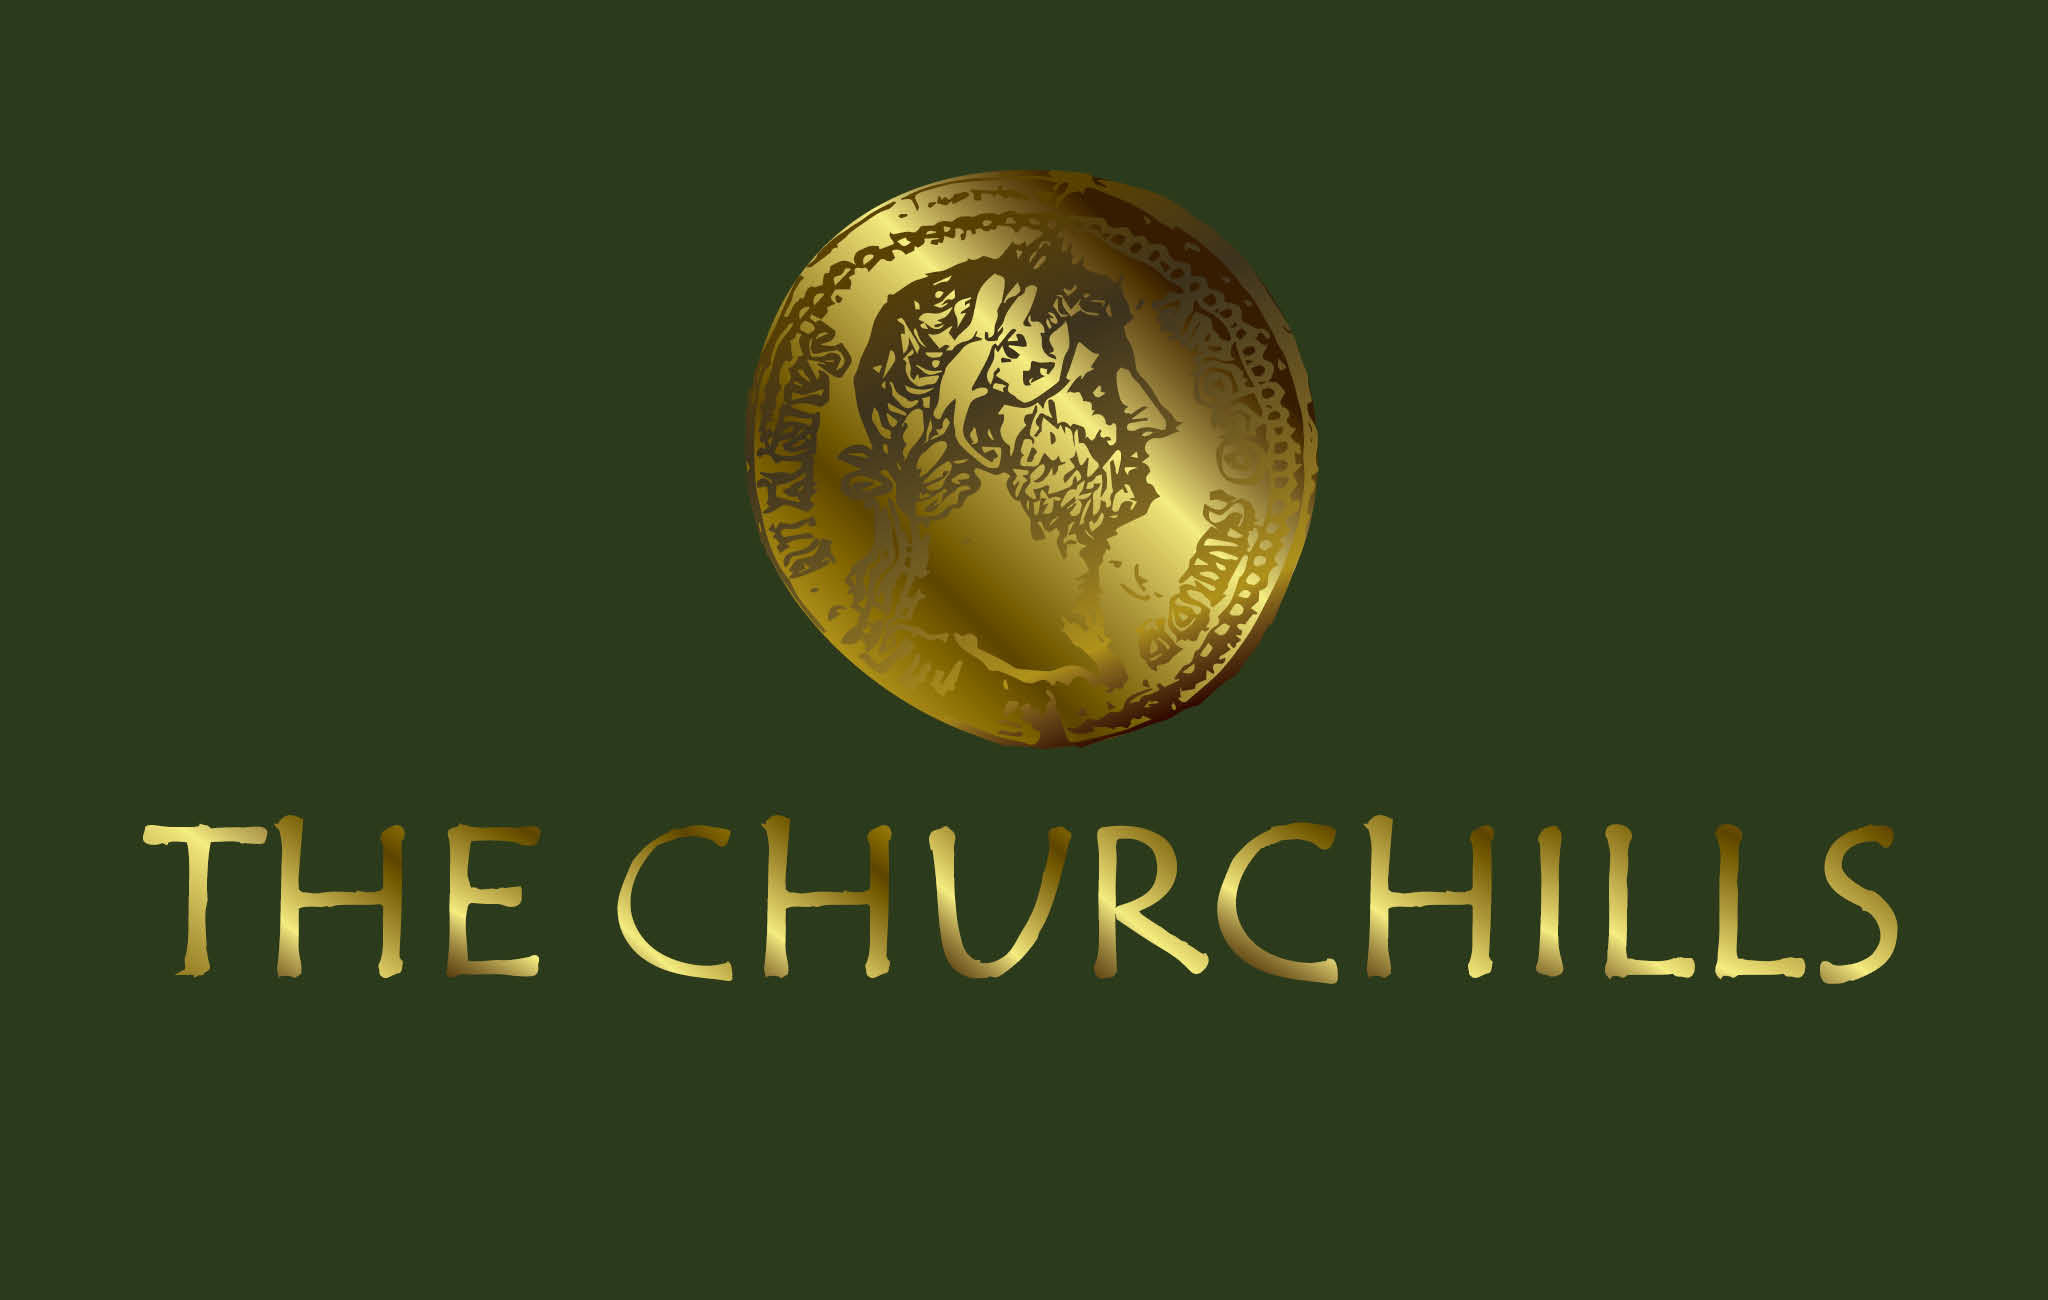 The Churchills property development logo